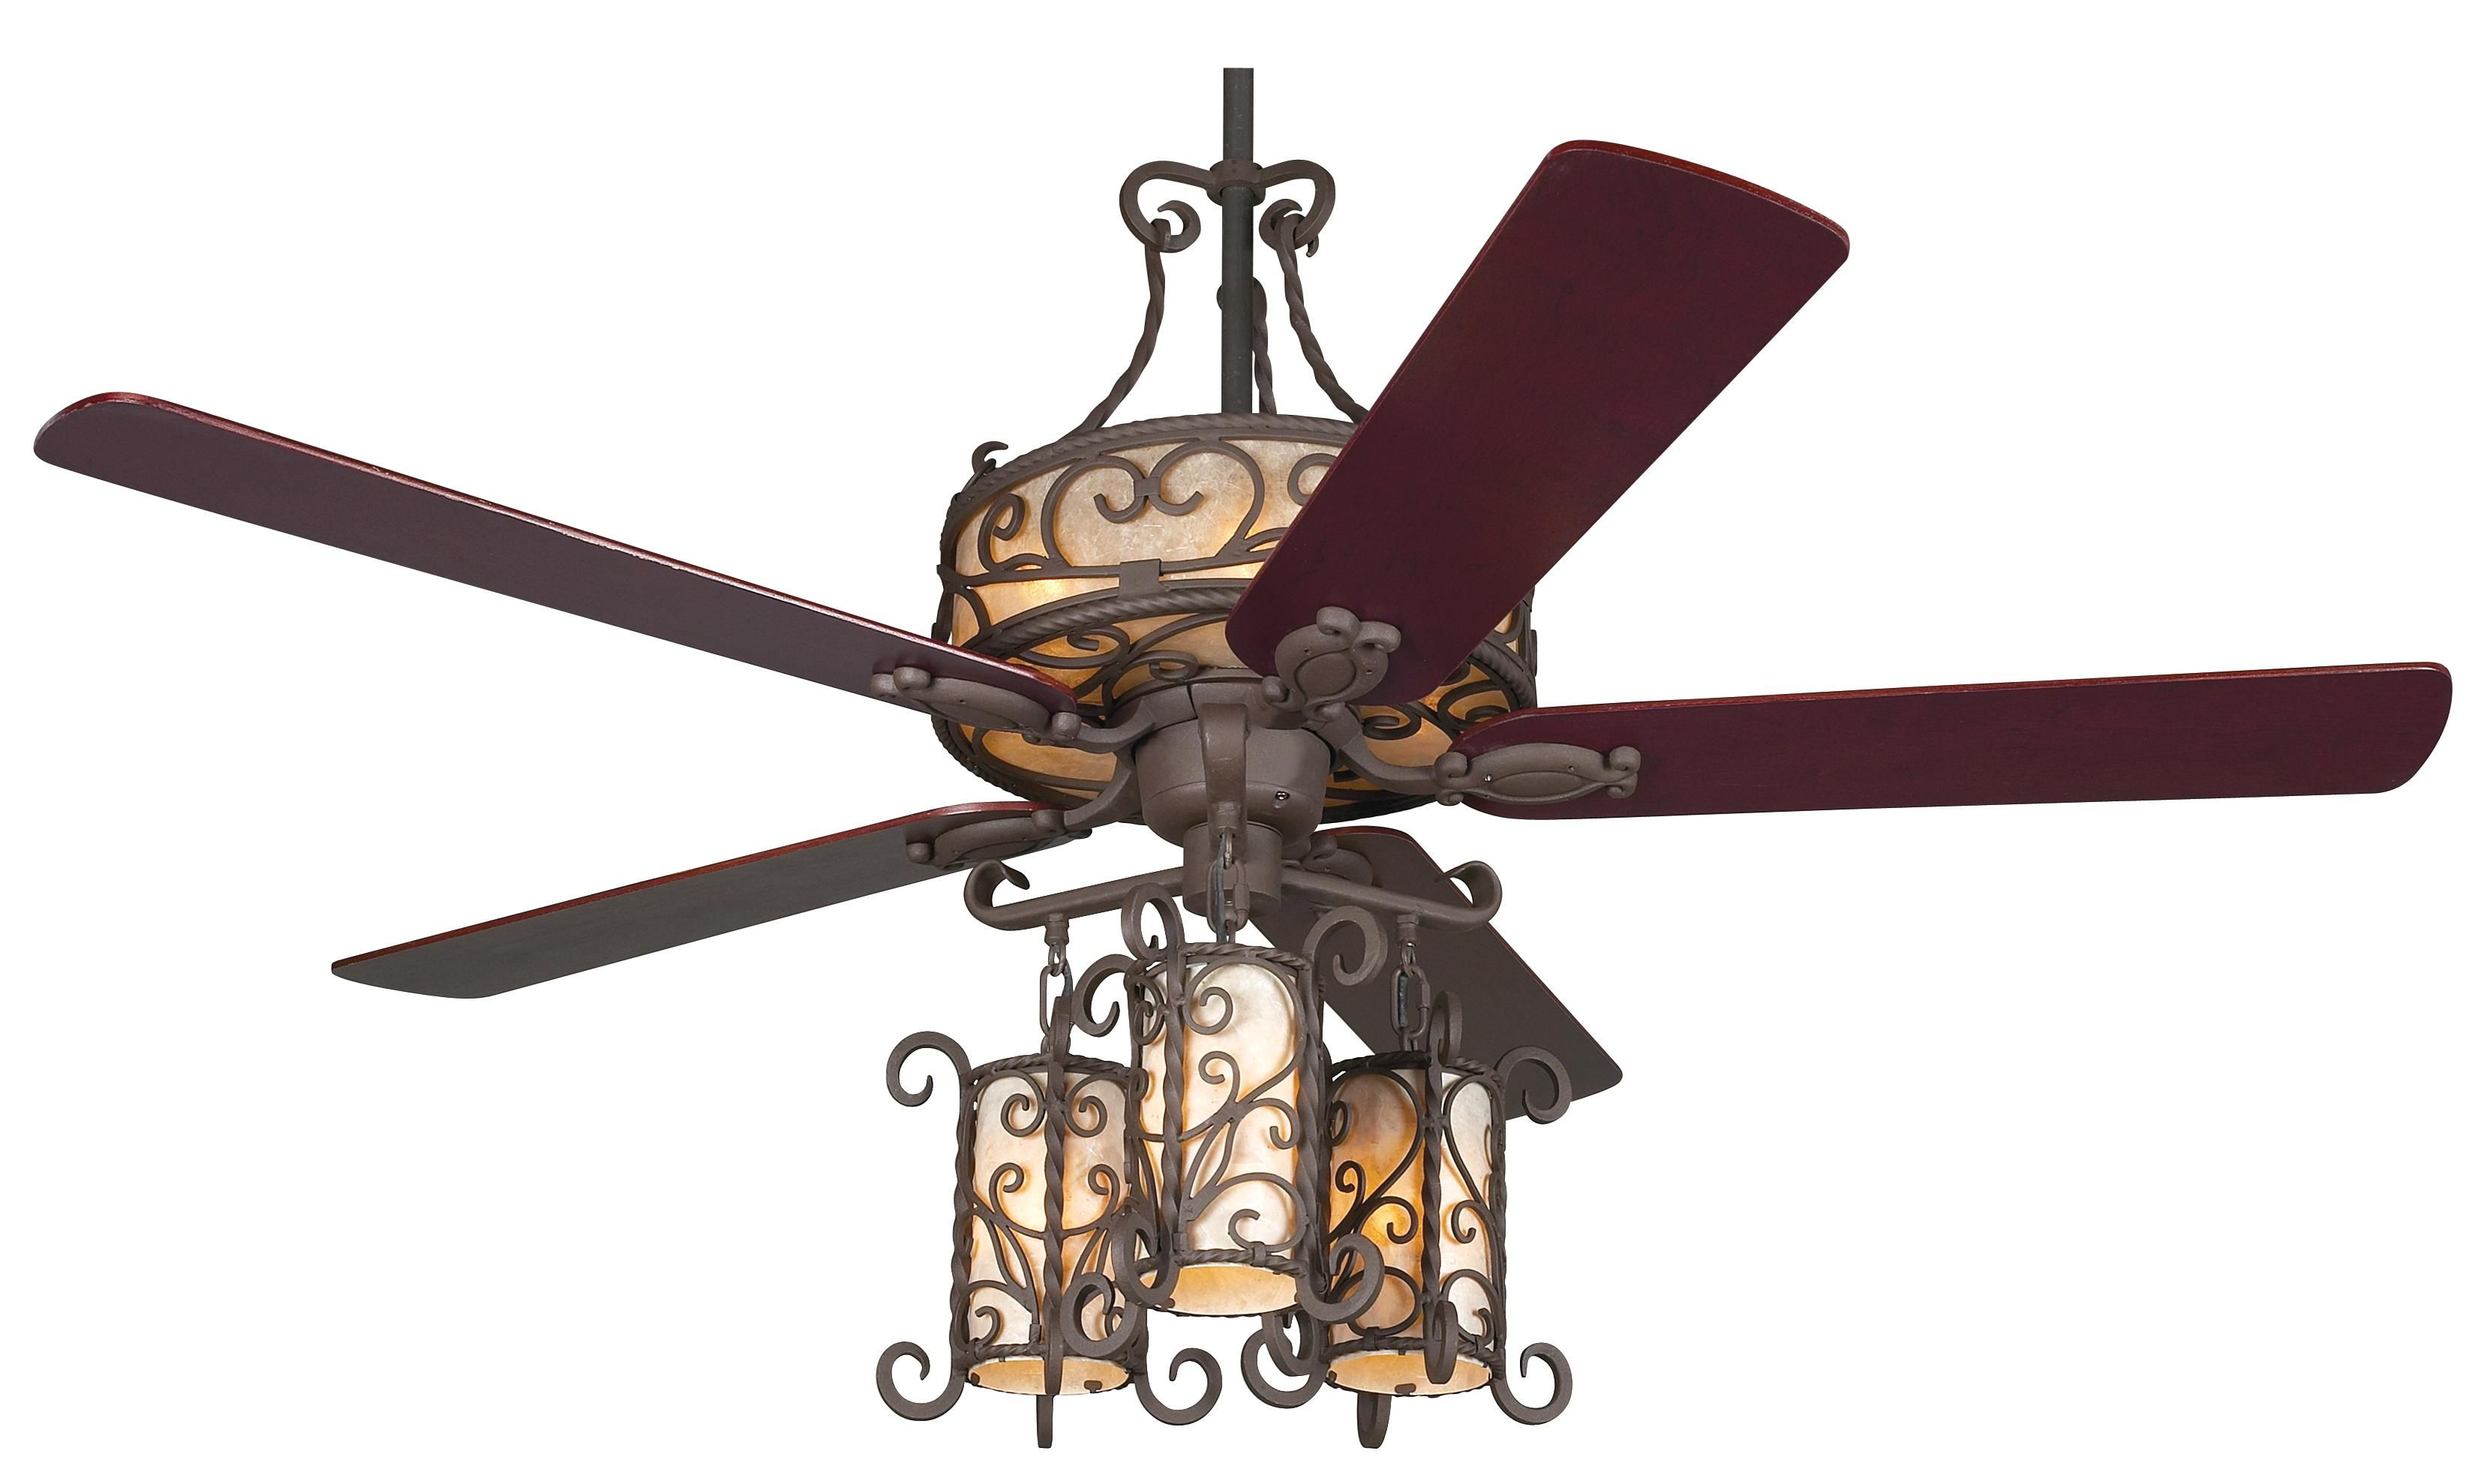 Rustic Style Ceiling Fans Seville Light Kit Ceiling Fan Spanish Influenced Rustic